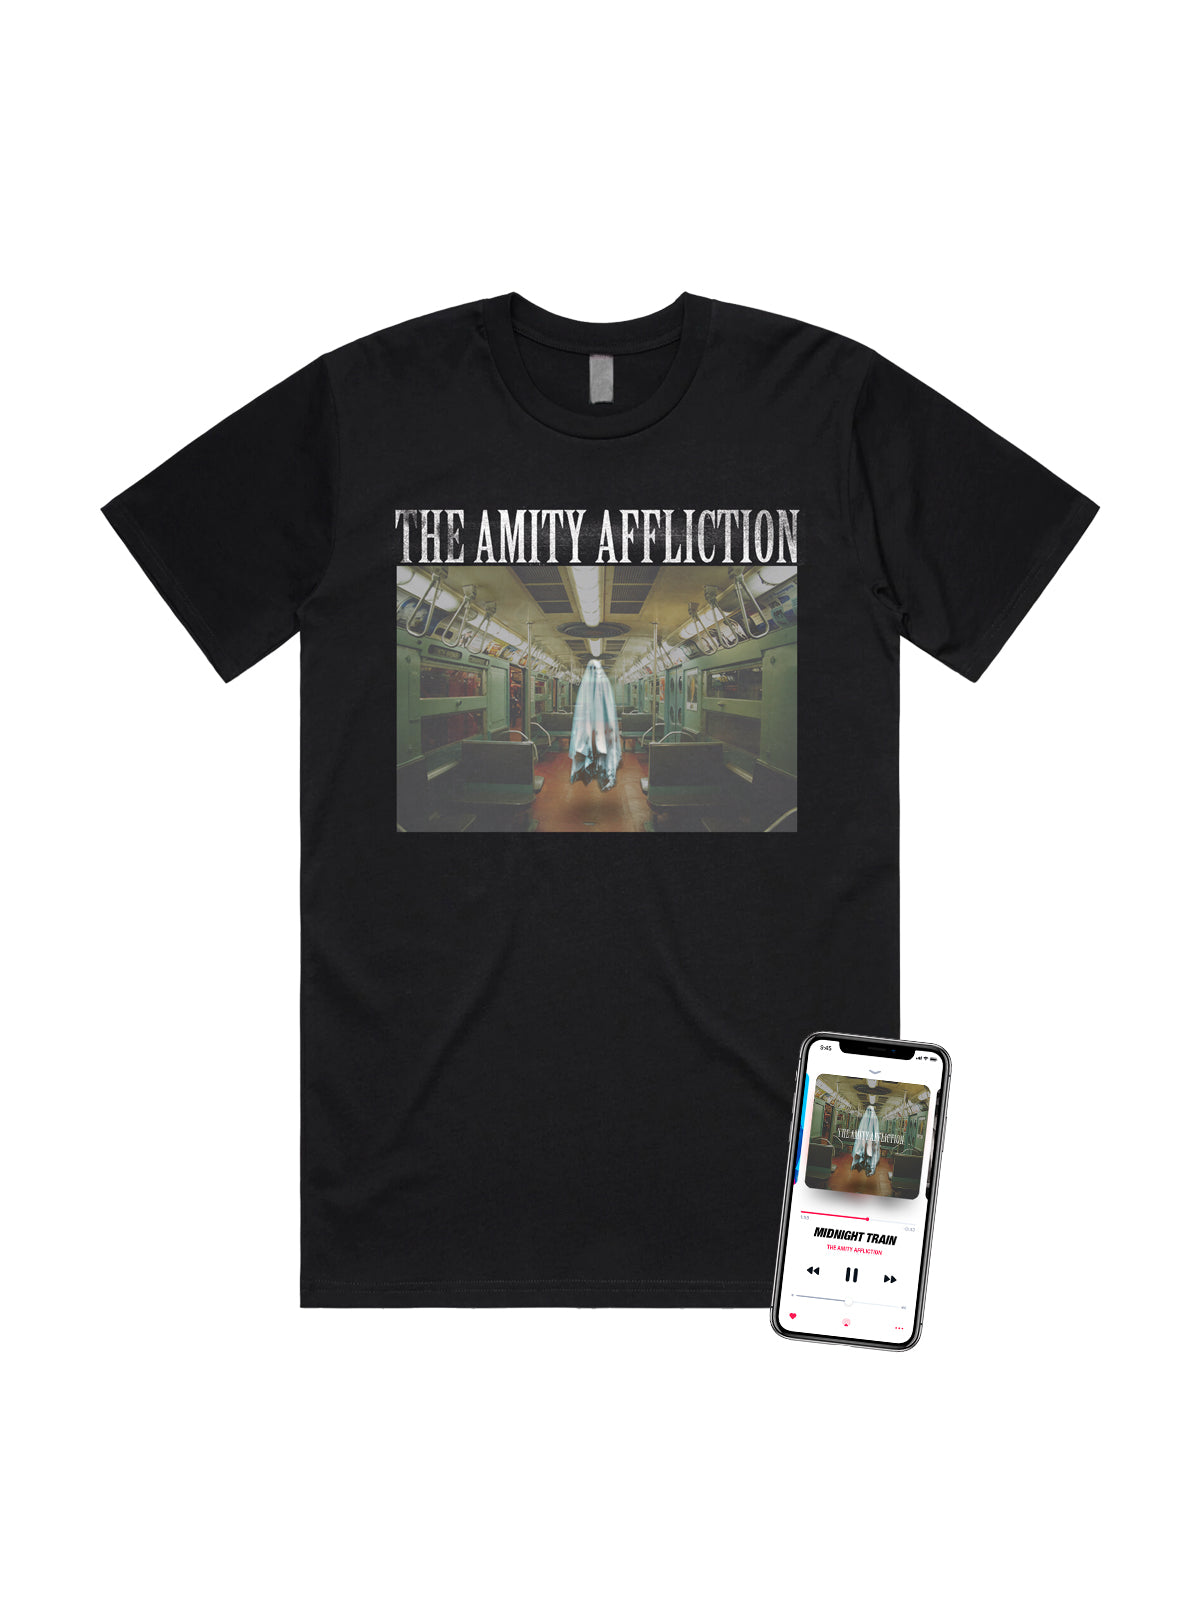 The Amity Affliction - Midnight Train Shirt + Download - SHIPS NOVEMBER 30